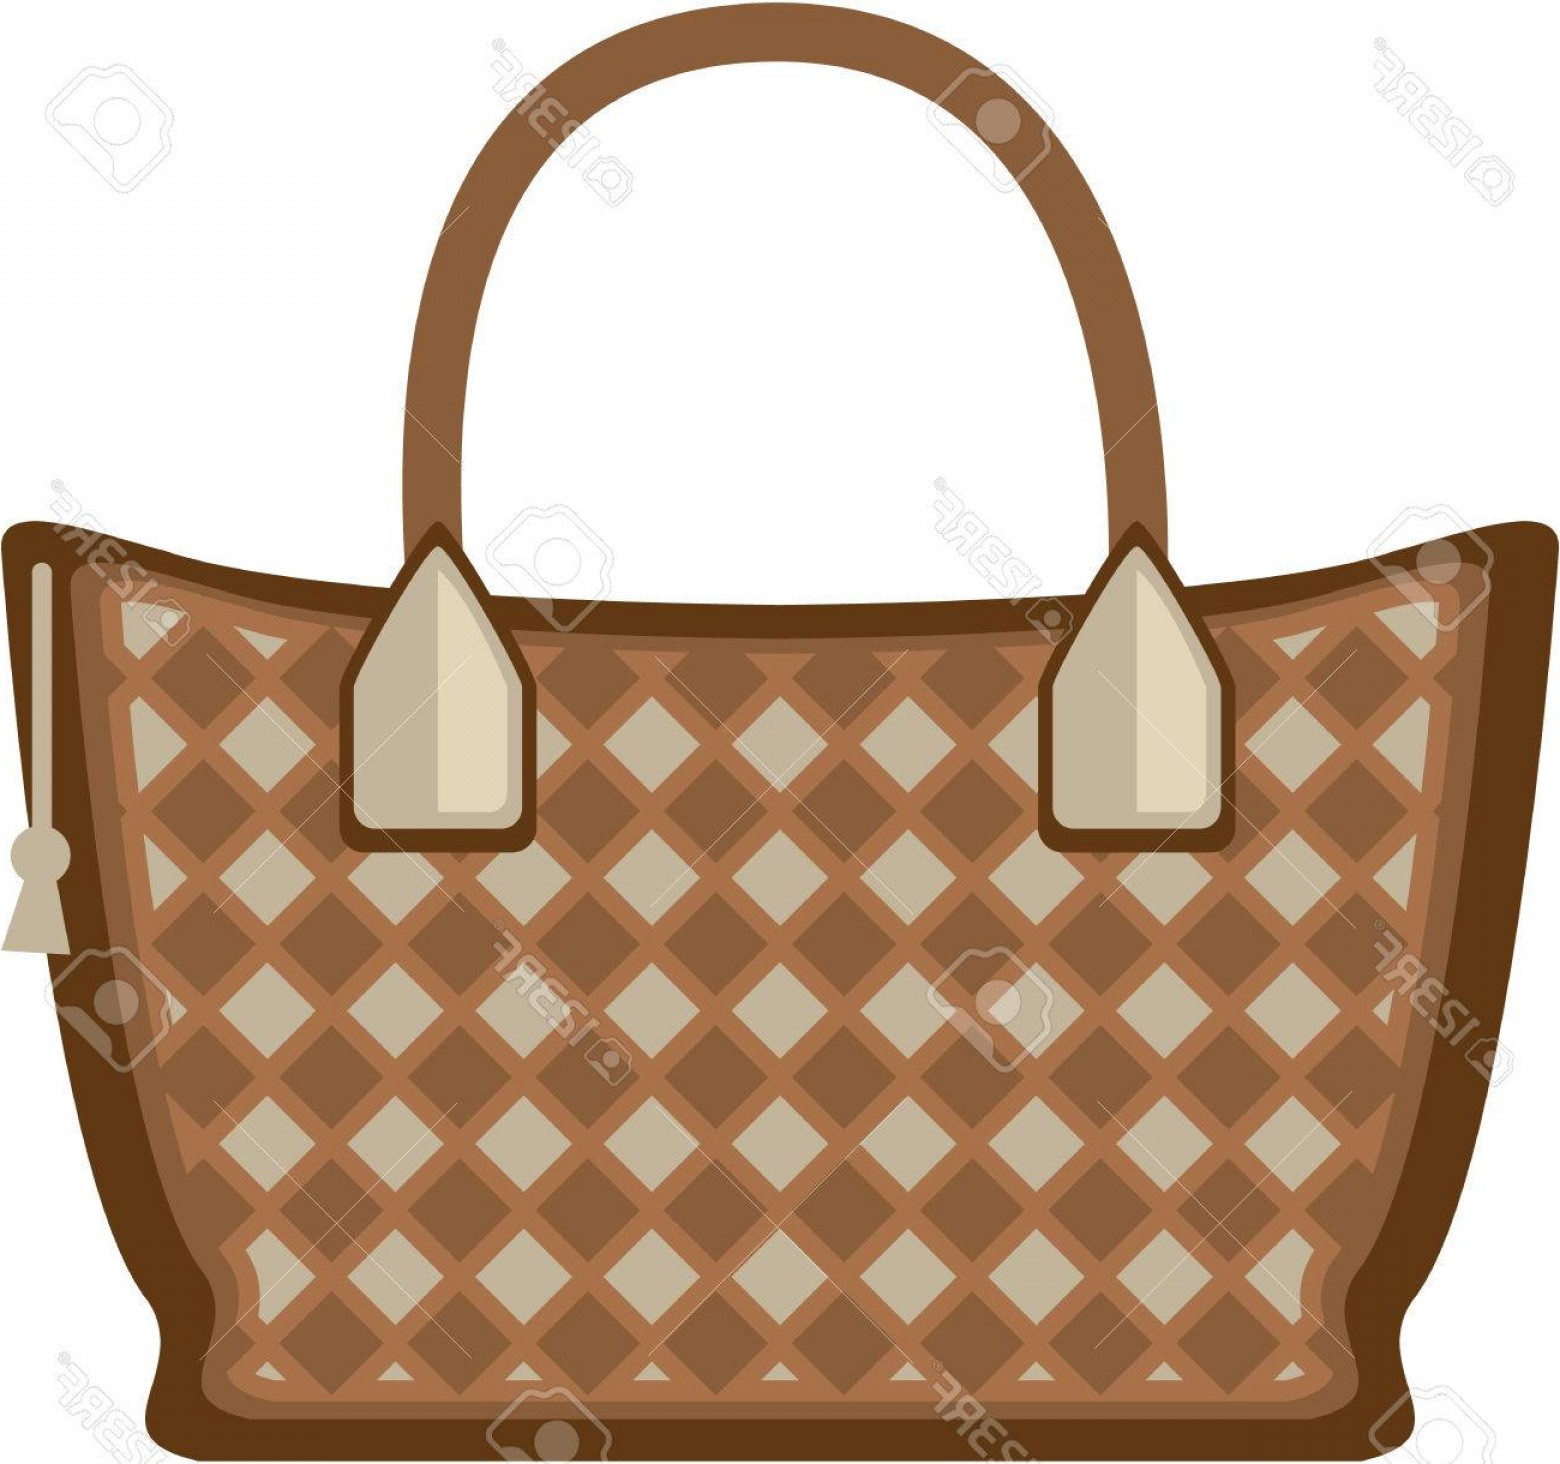 Purse Vector Art: Photostock Vector Leather Purse Vector Illustration Clip Art Image